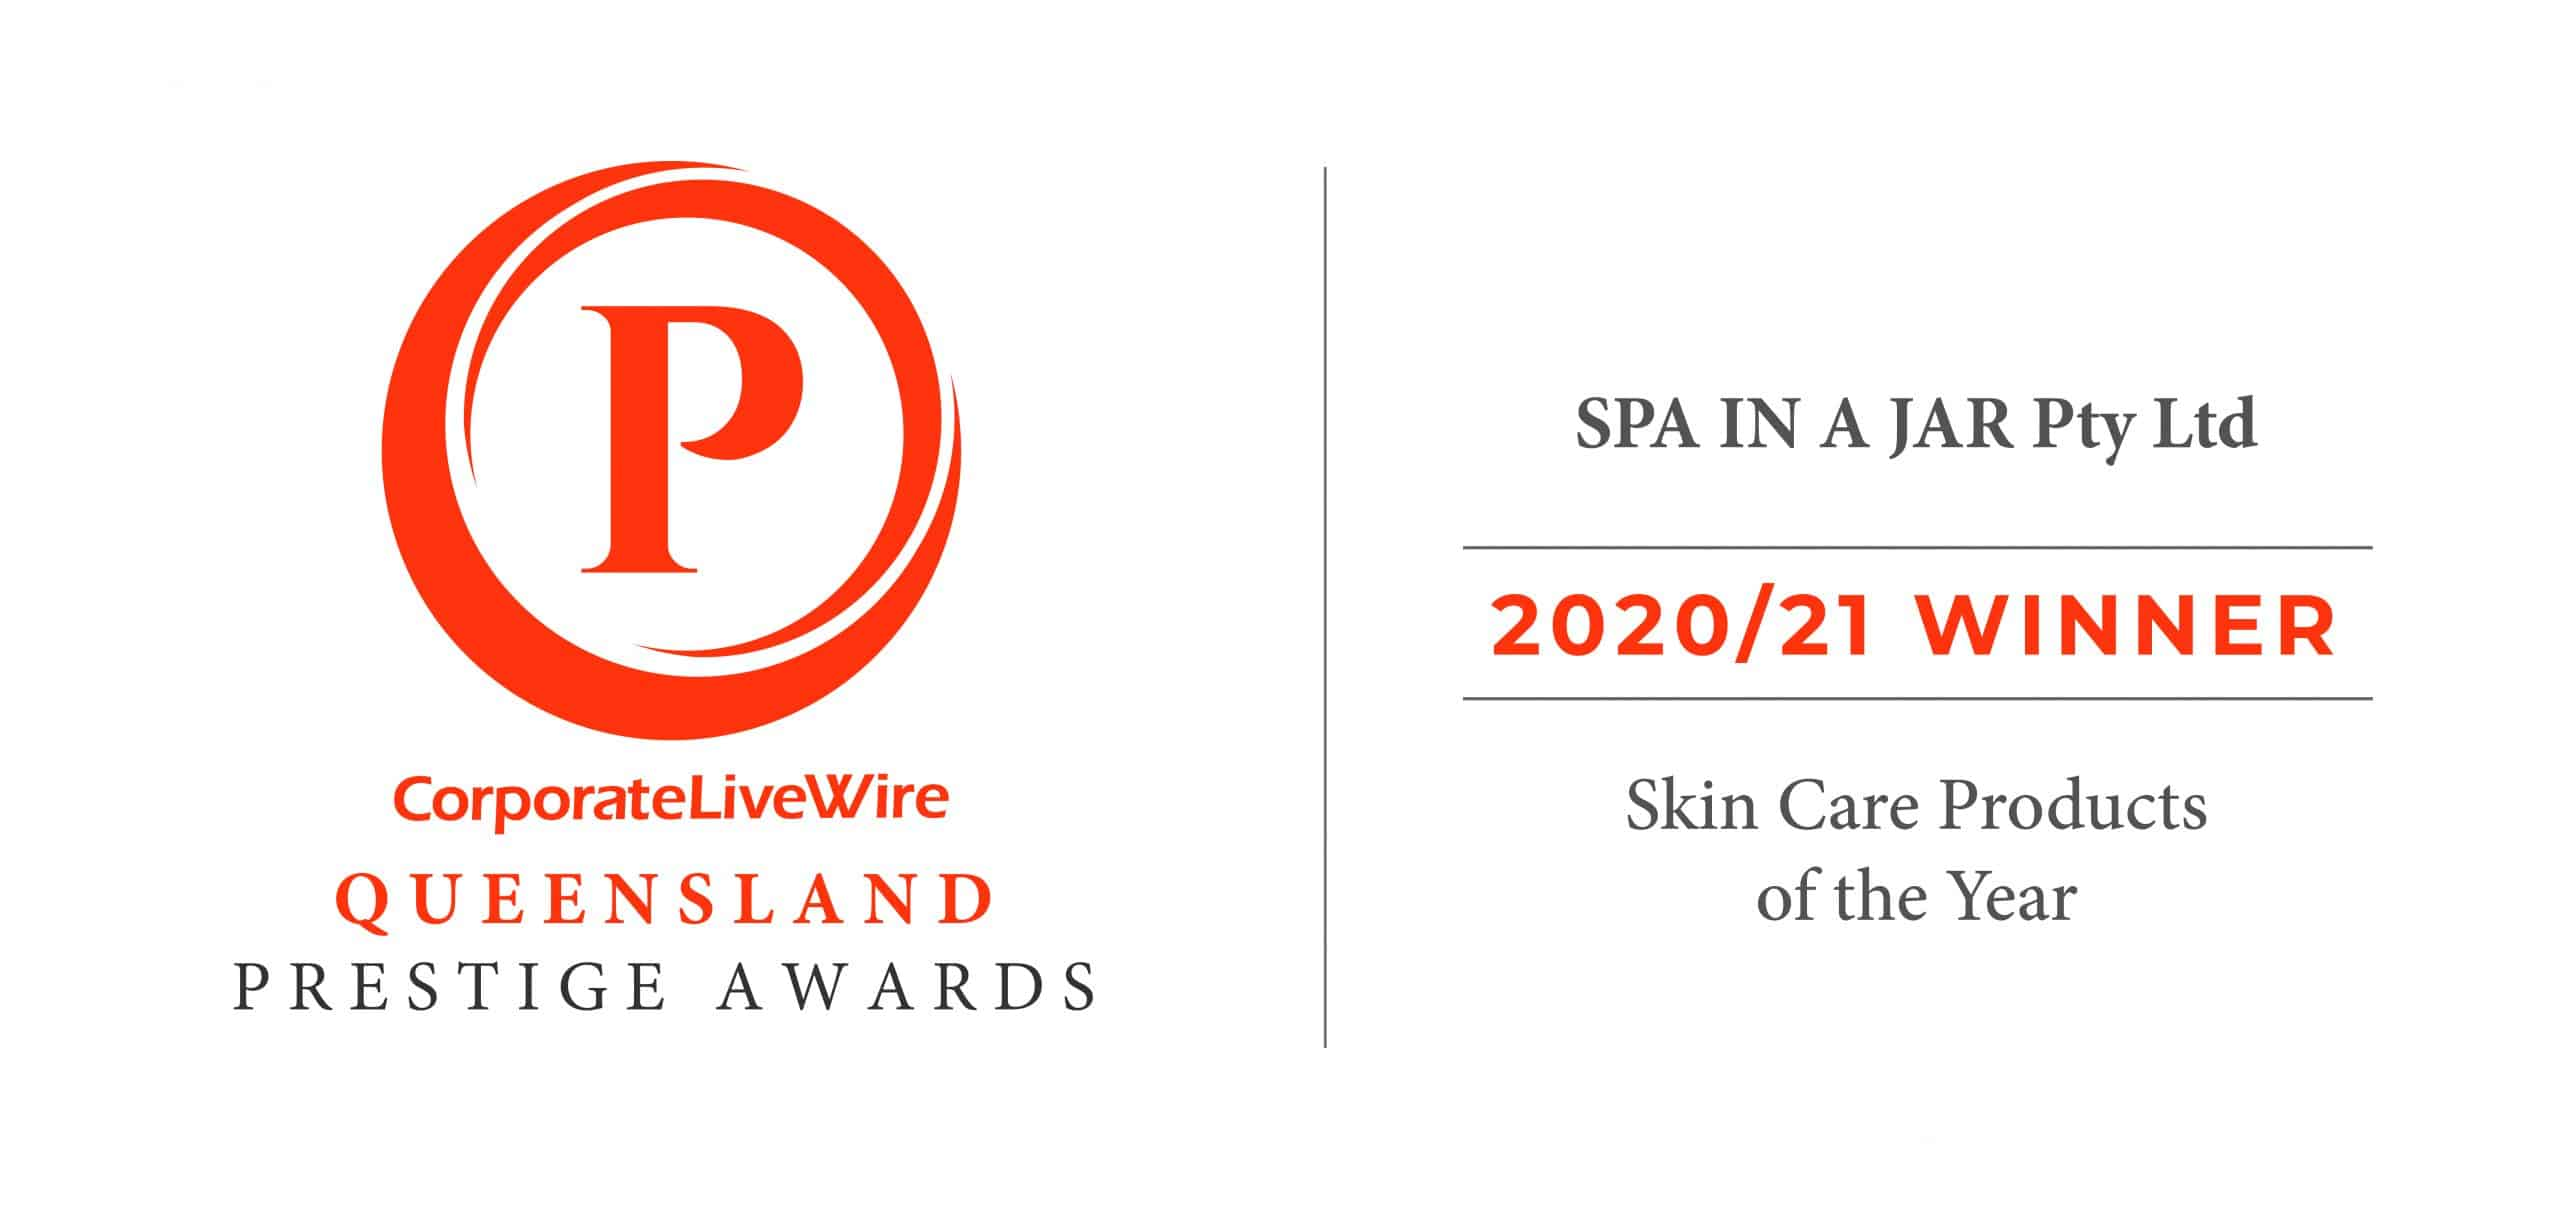 spajar skincare wins Queensland Prestige Awards 2020/21